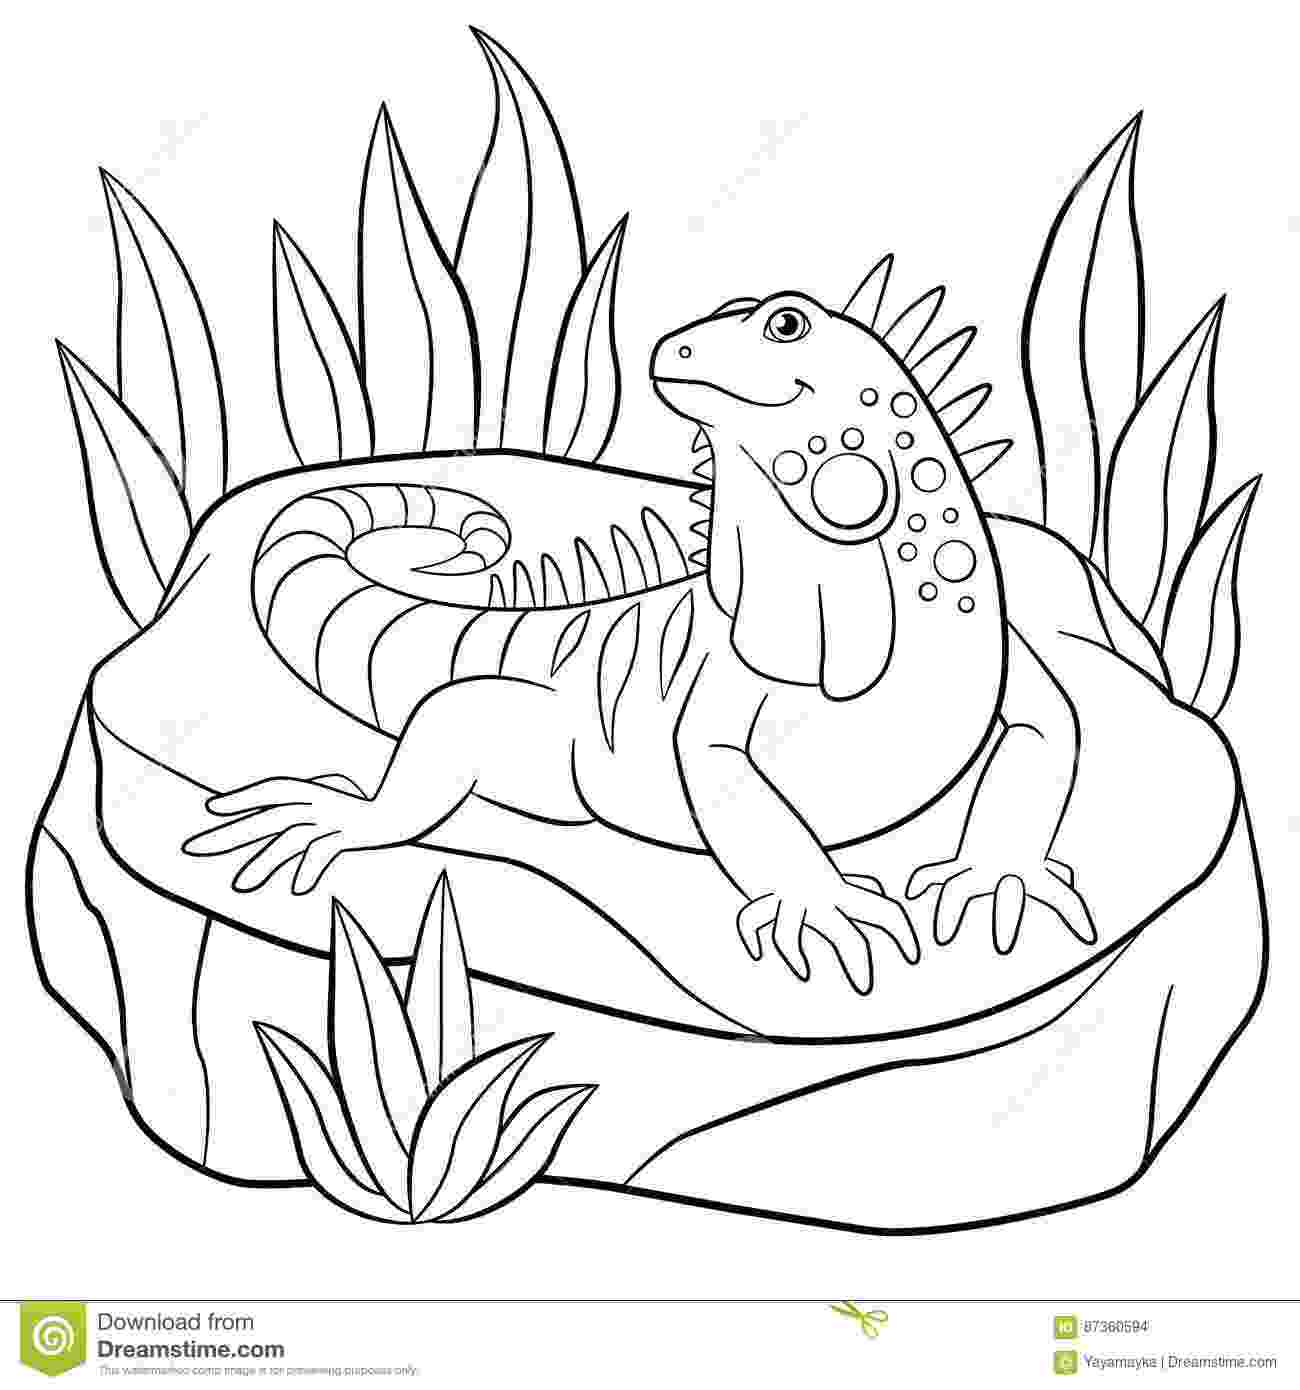 iguana coloring page iguana coloring pages getcoloringpagescom coloring iguana page